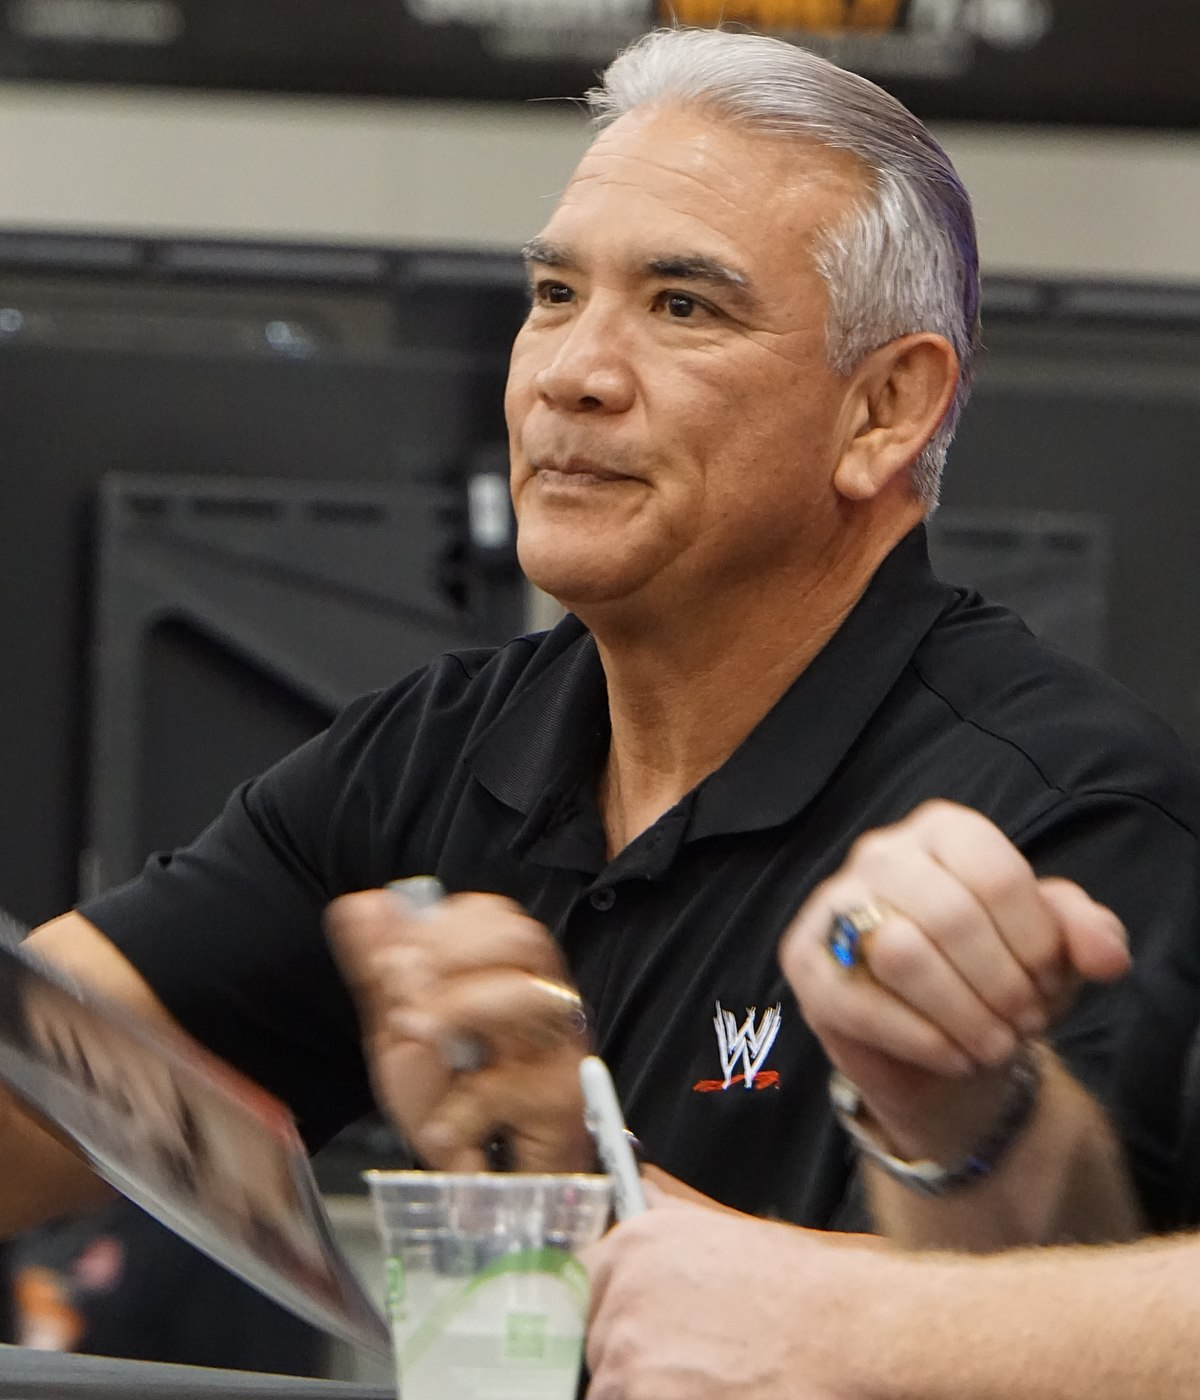 ricky steamboat - wikipedia